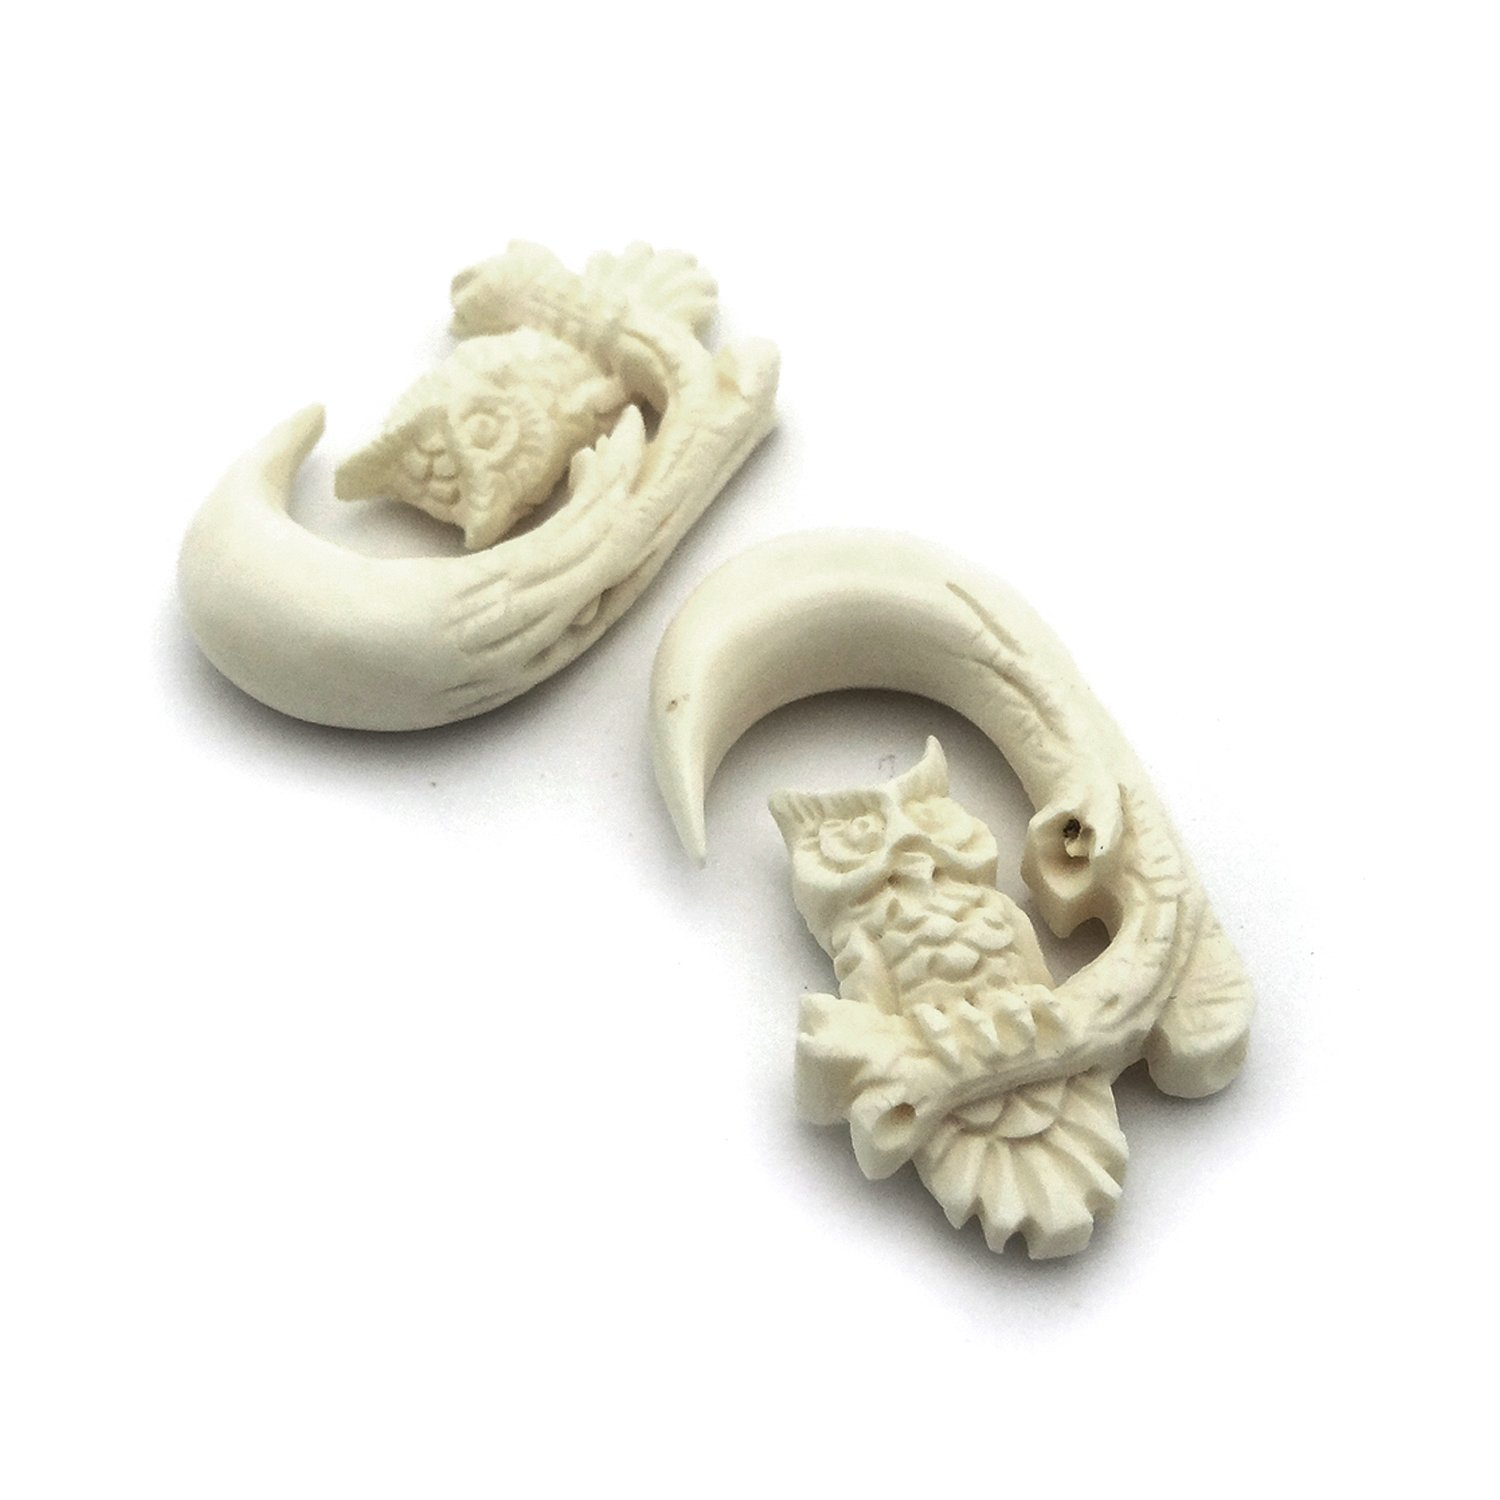 Pair of Hand Carved Organic Horn Bone Hanging Body Piercing Jewelry Wise Owl on Tree Branch (6.5mm (2g))